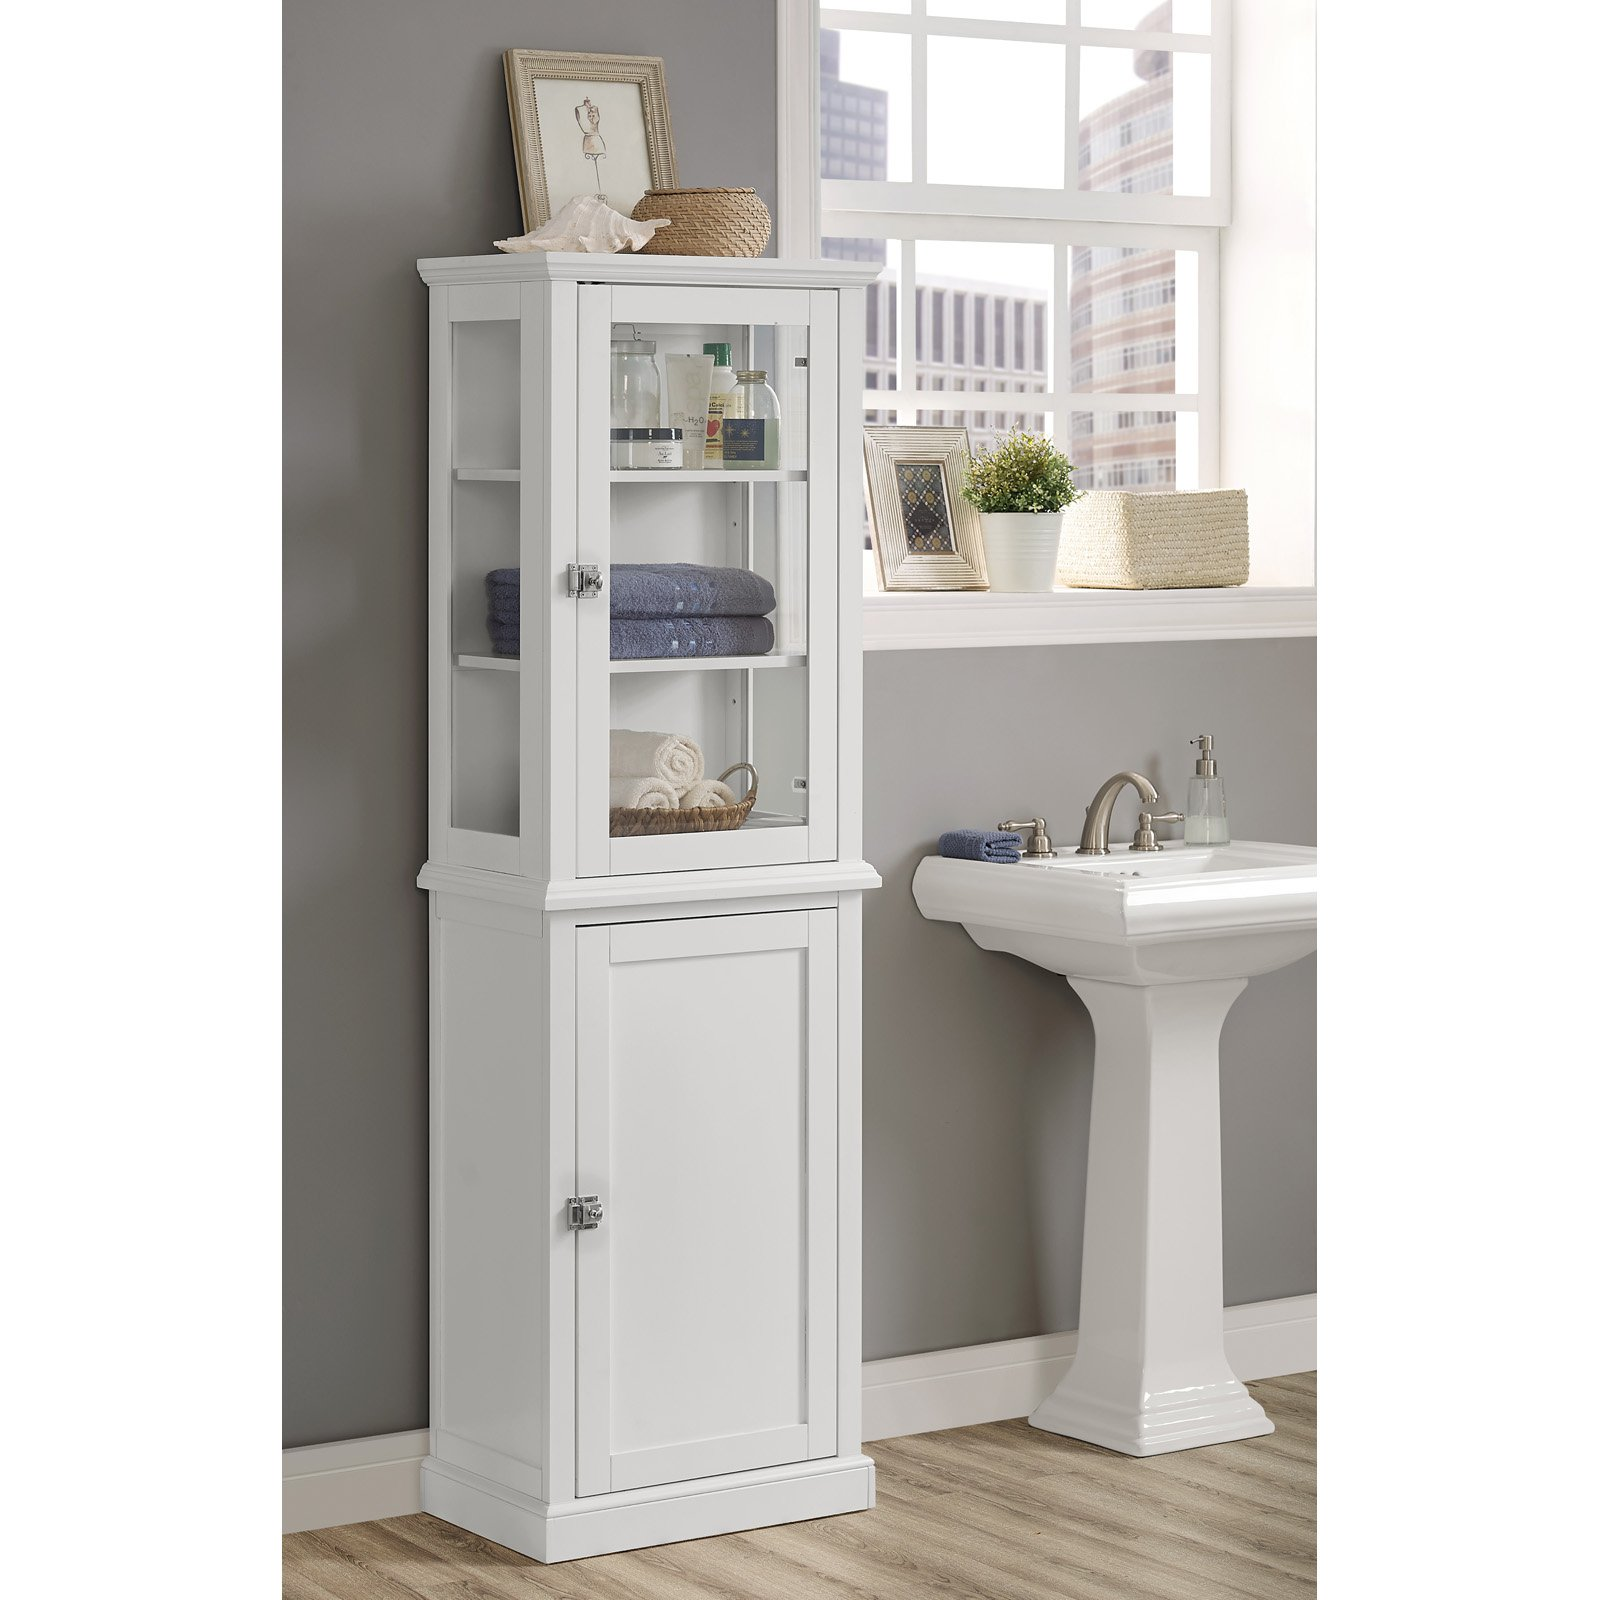 Superieur Linon Scarsdale Tall Cabinet, White, Open And Closed Storage Area    Walmart.com